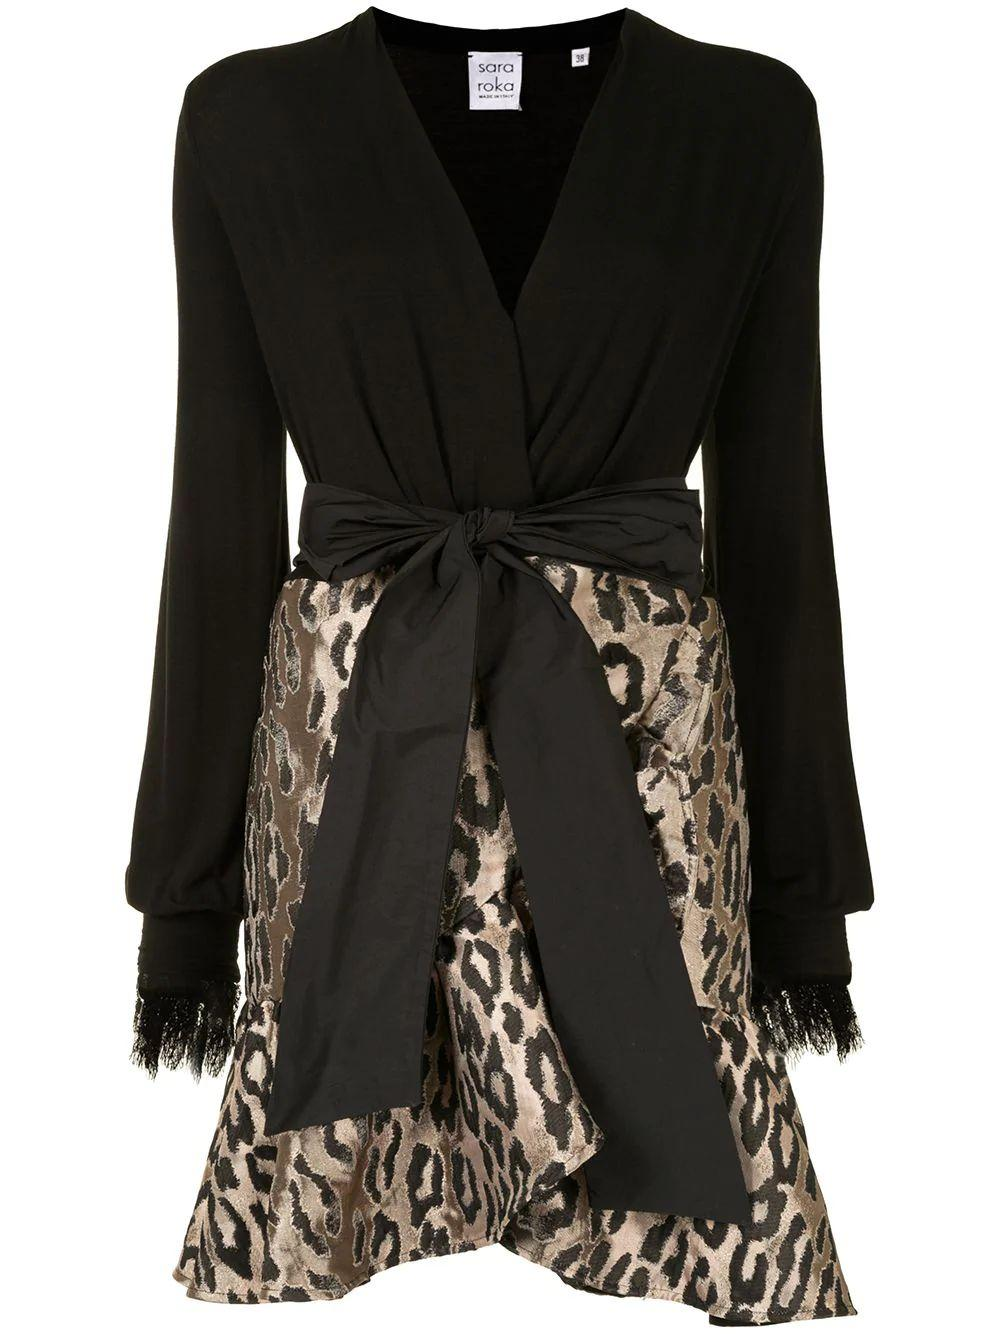 Leopard Print Dress With Lace Accents